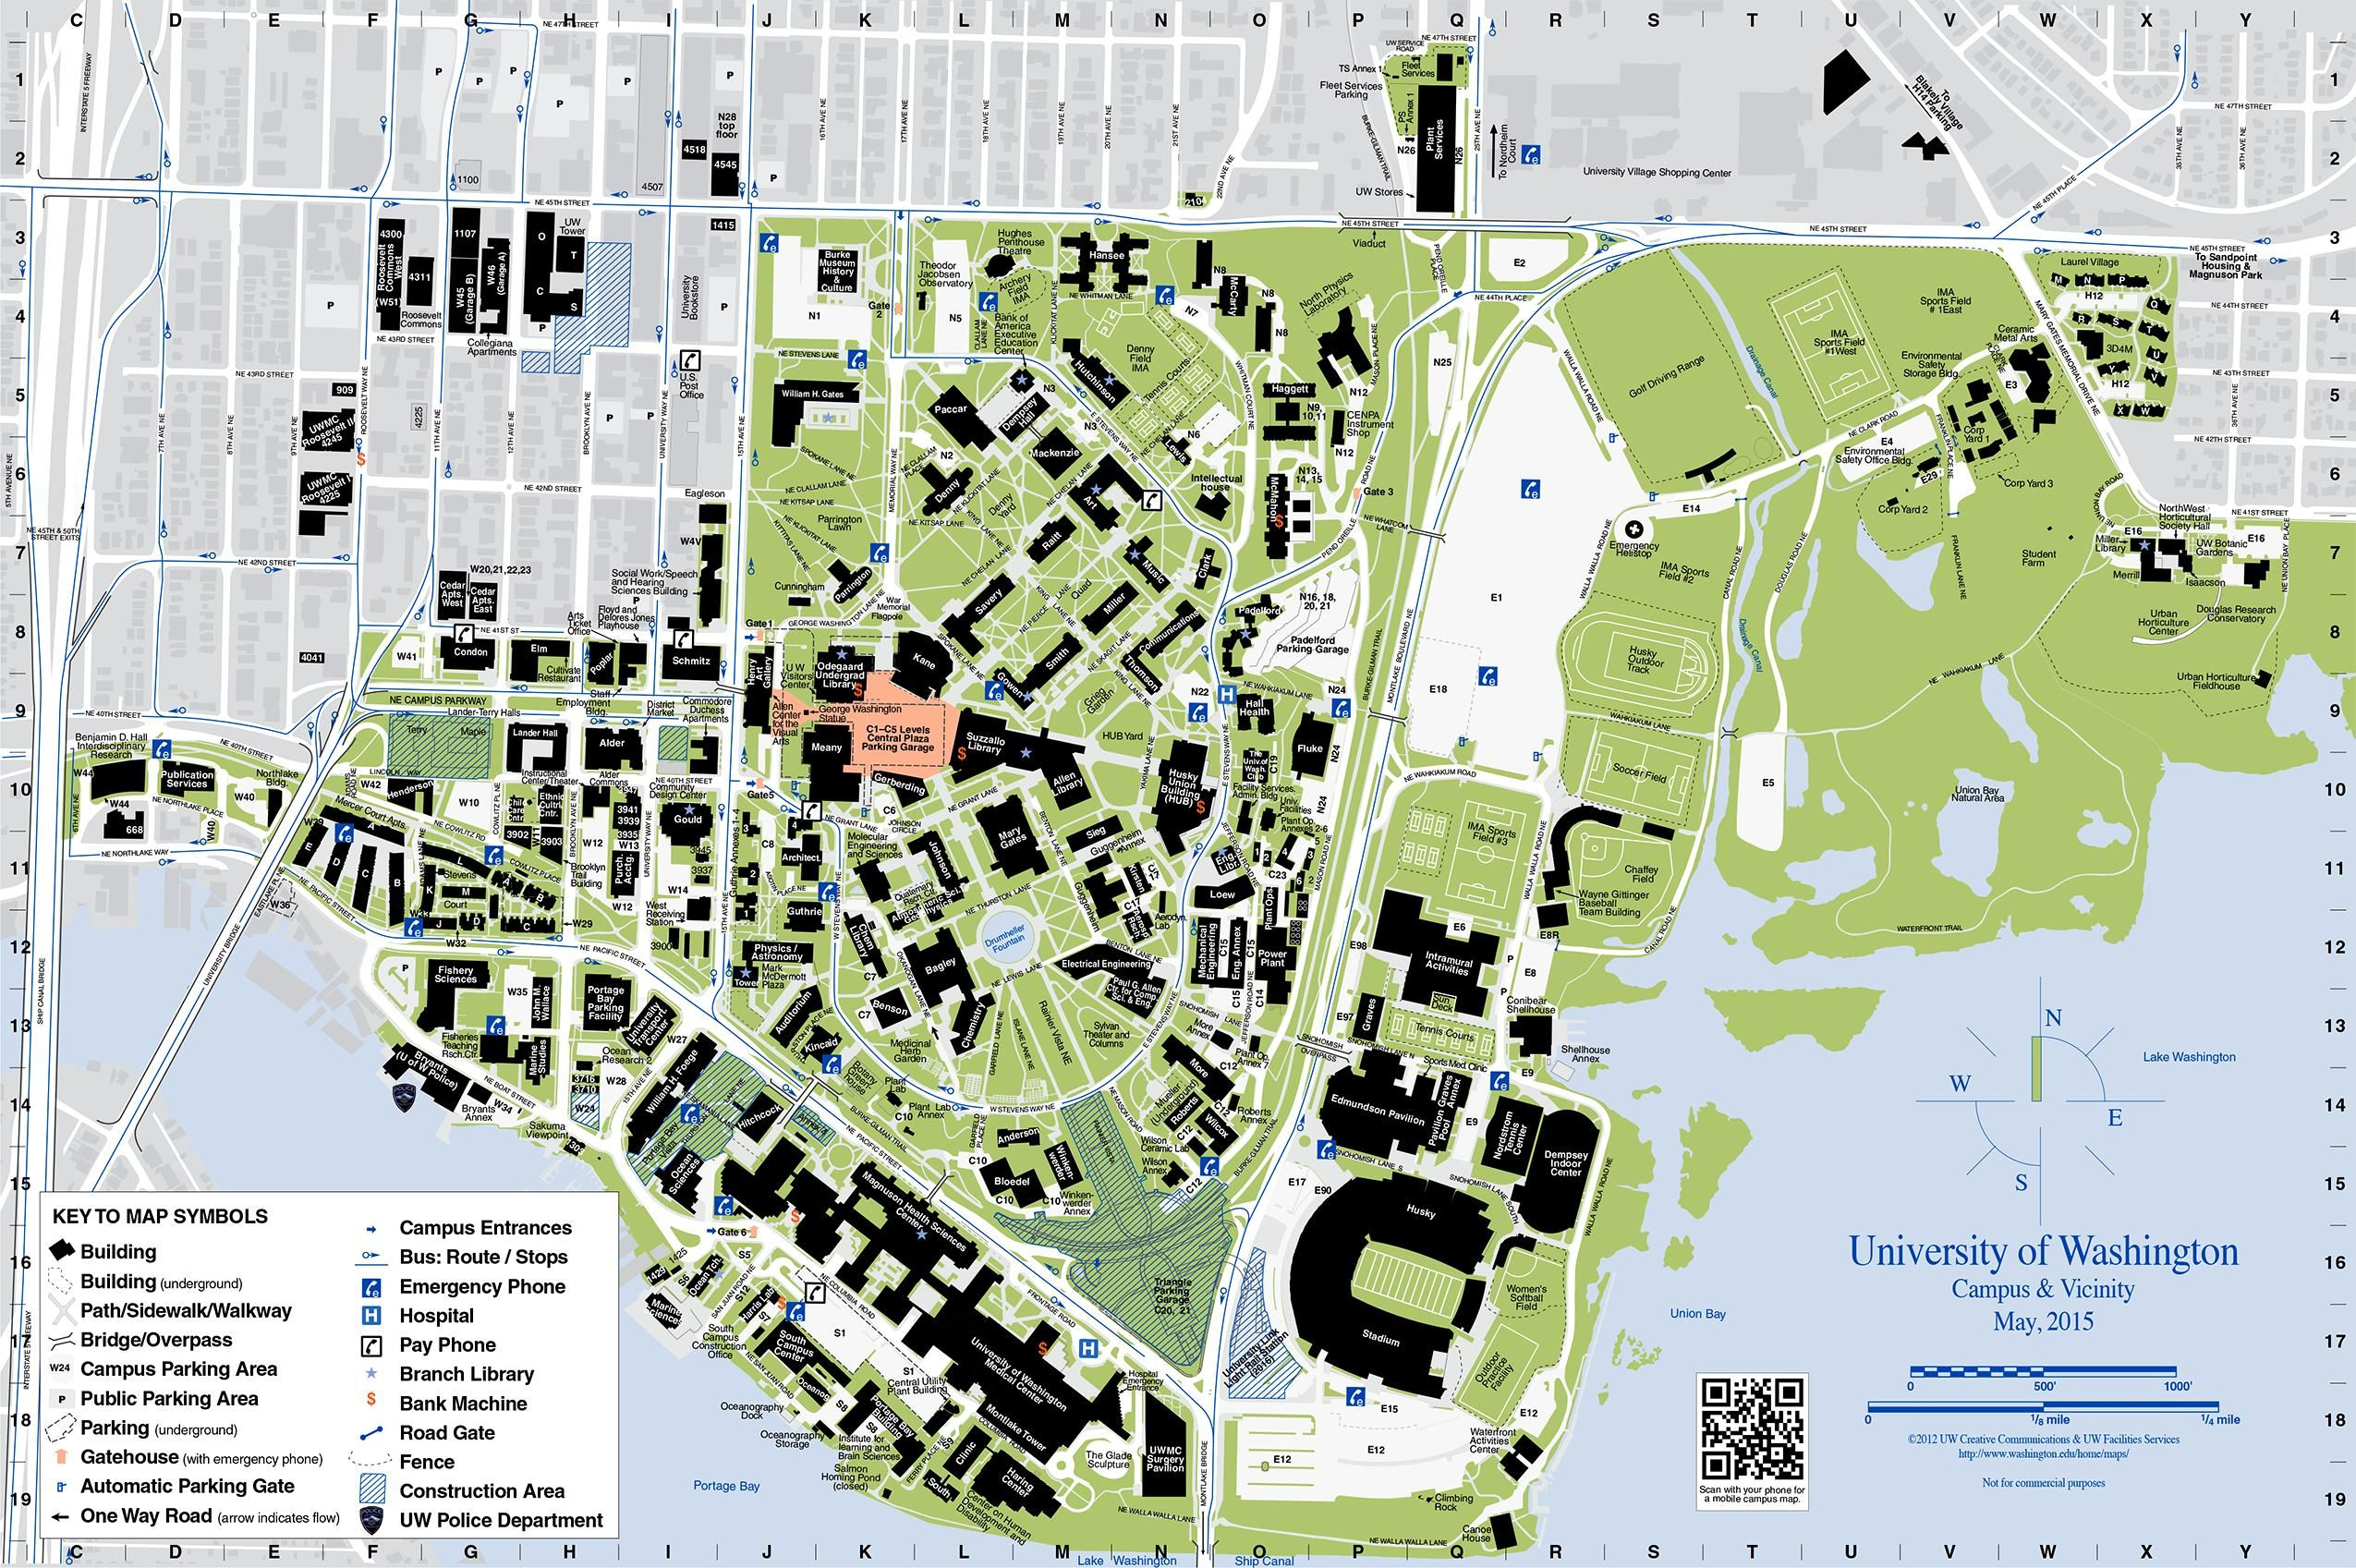 u of washington campus map Map Of University Of Washington From Maps Seattle 1 Campus Campusmap Universityofwashington Washington Usa Map Of